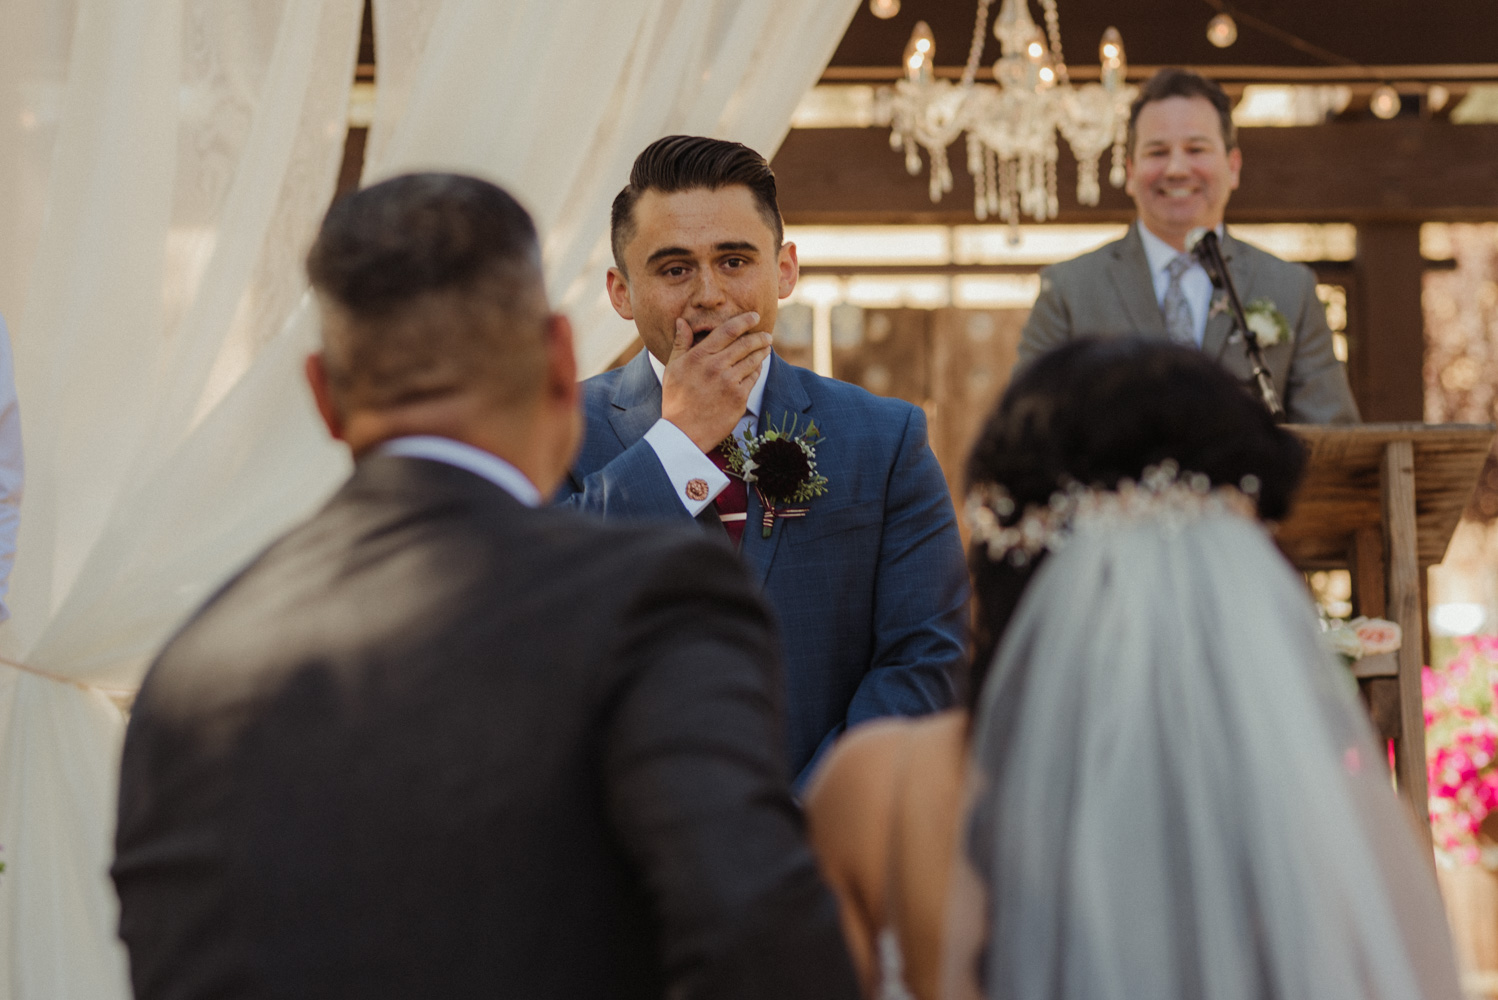 Ranch victoria vineyards wedding groom's reaction to his bride walking down the isle photo